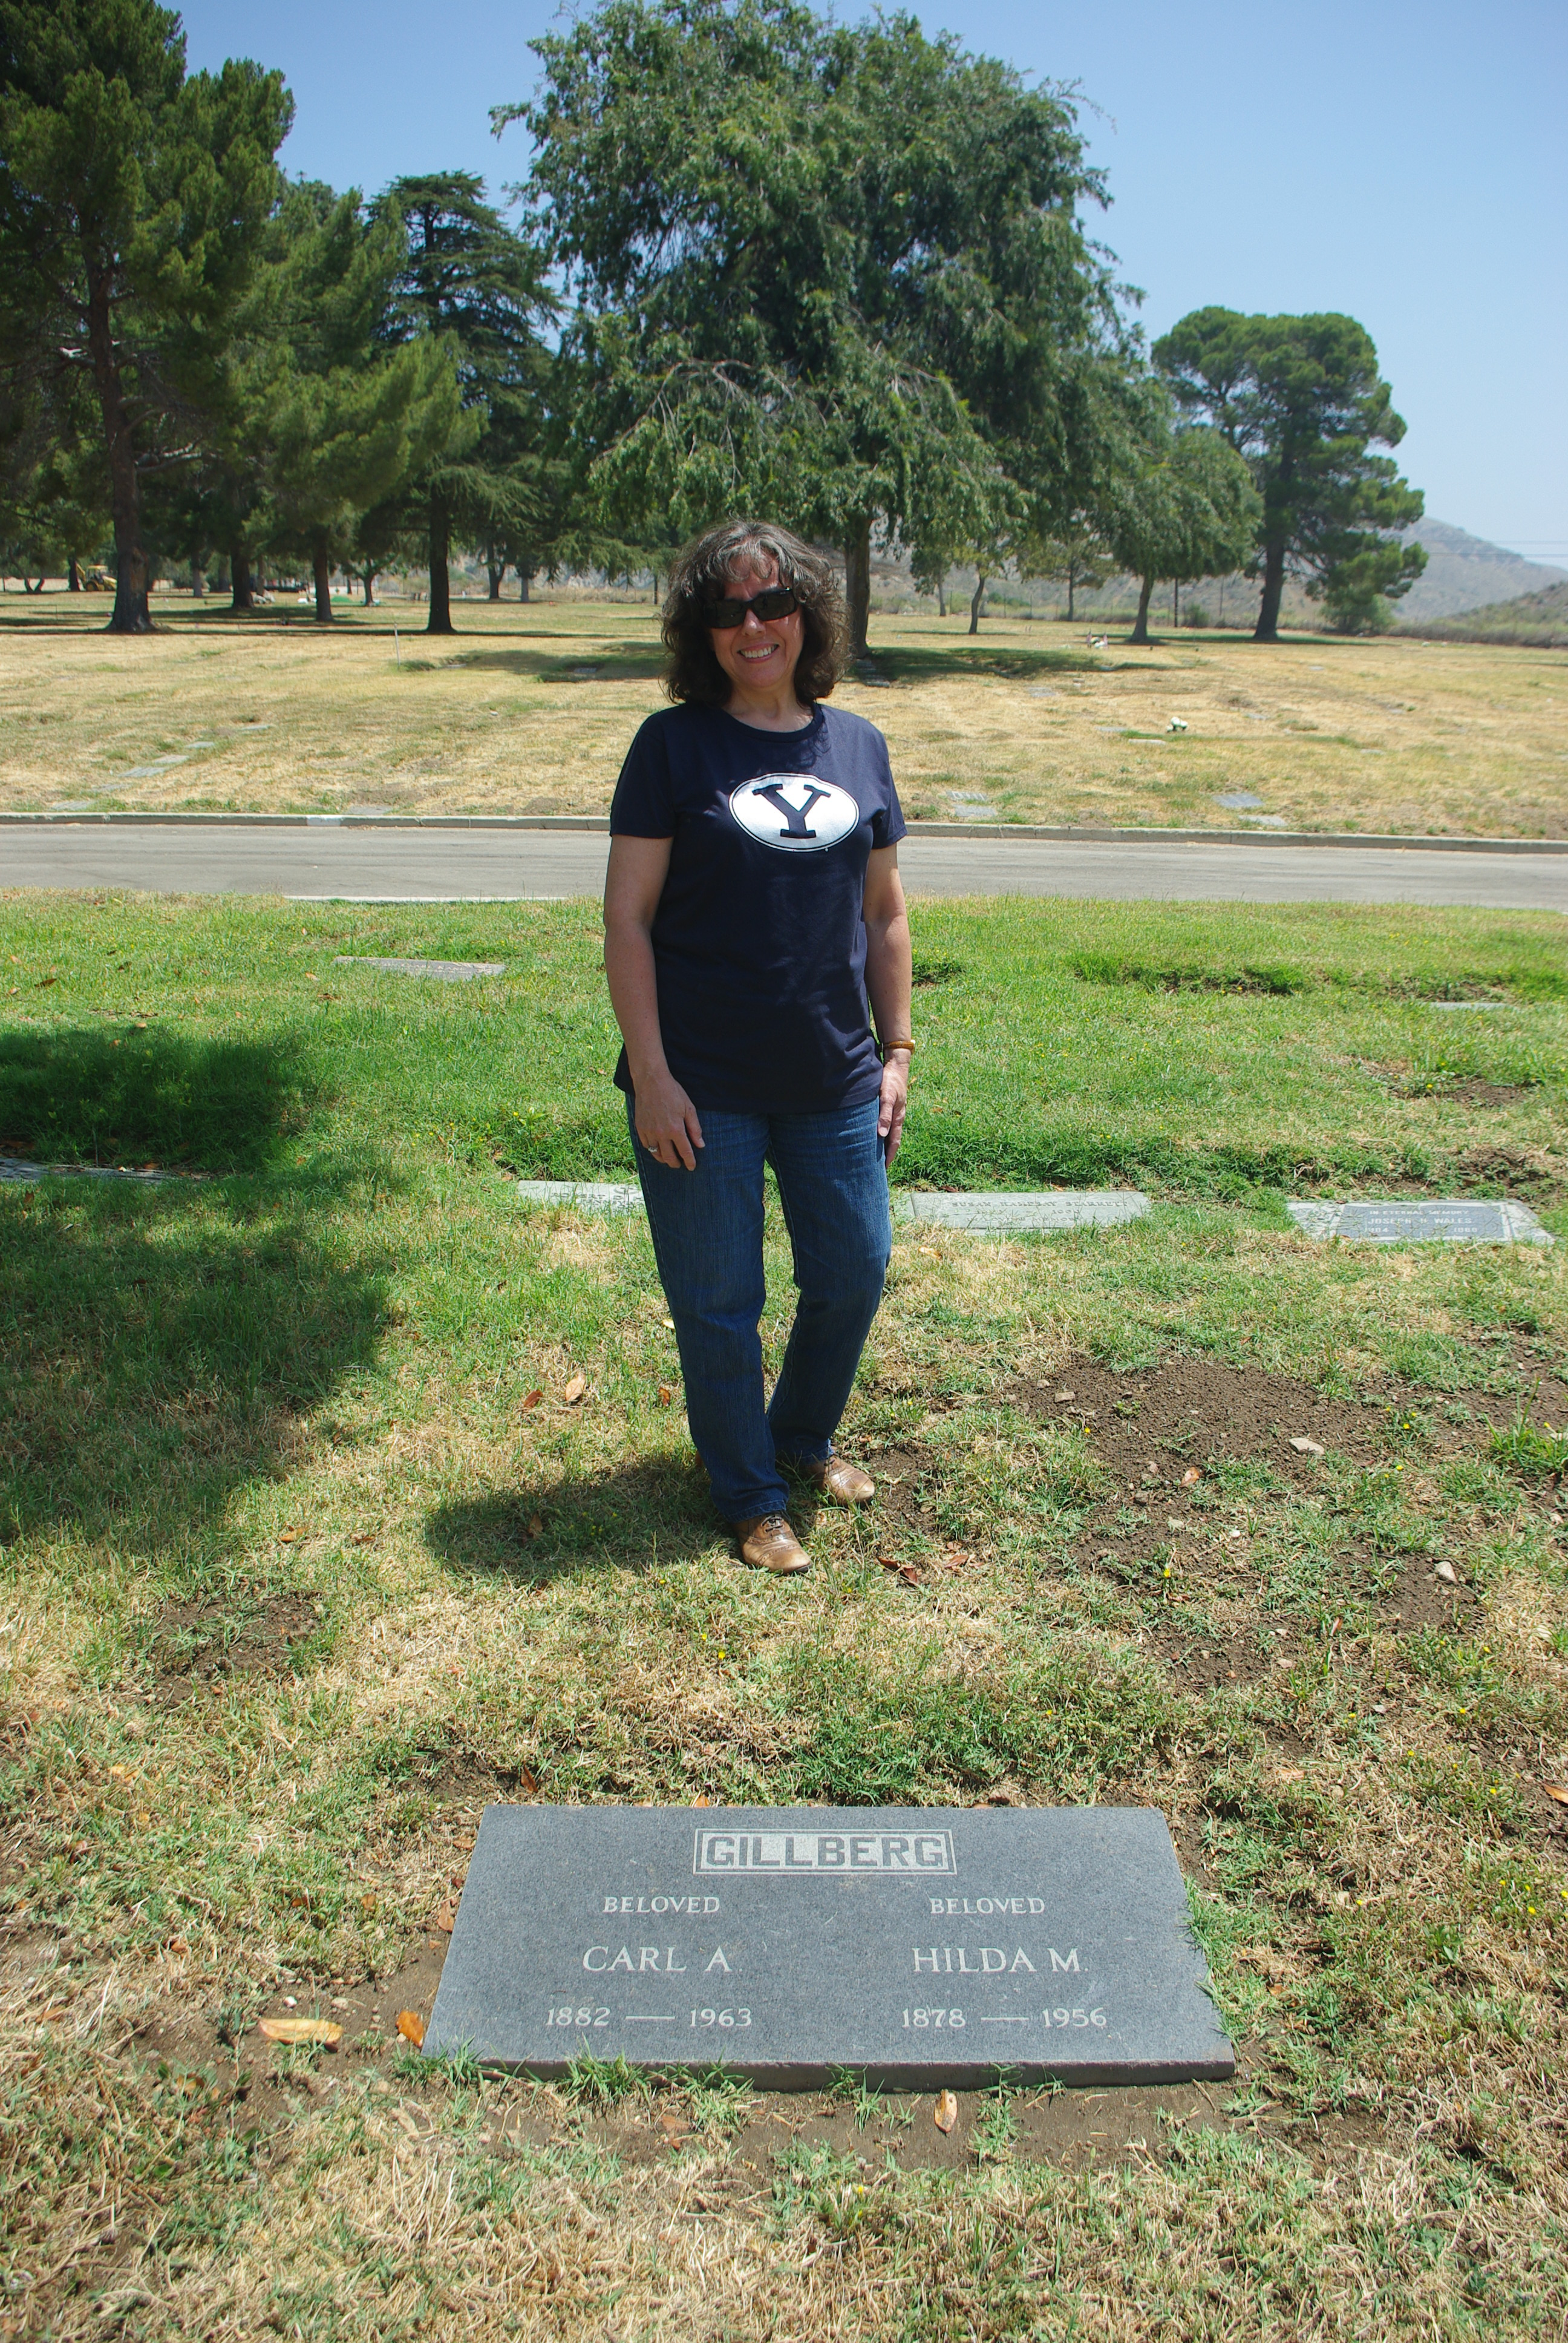 At the gravemarker of her paternal great-grandparents